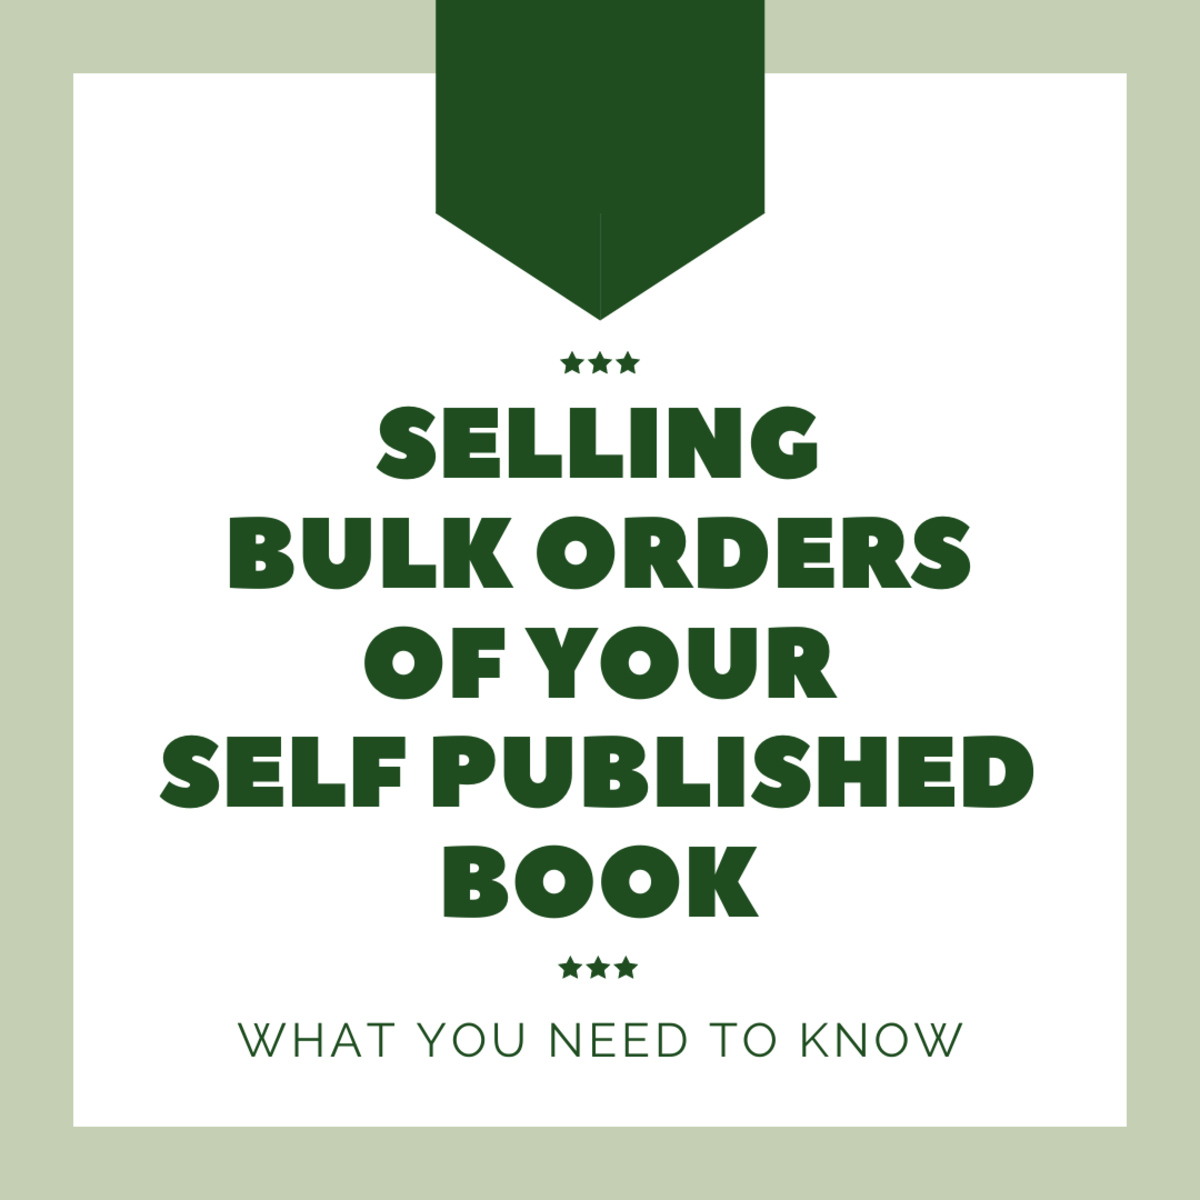 Want to sell lots of your self published books in one order? Here's what it takes.